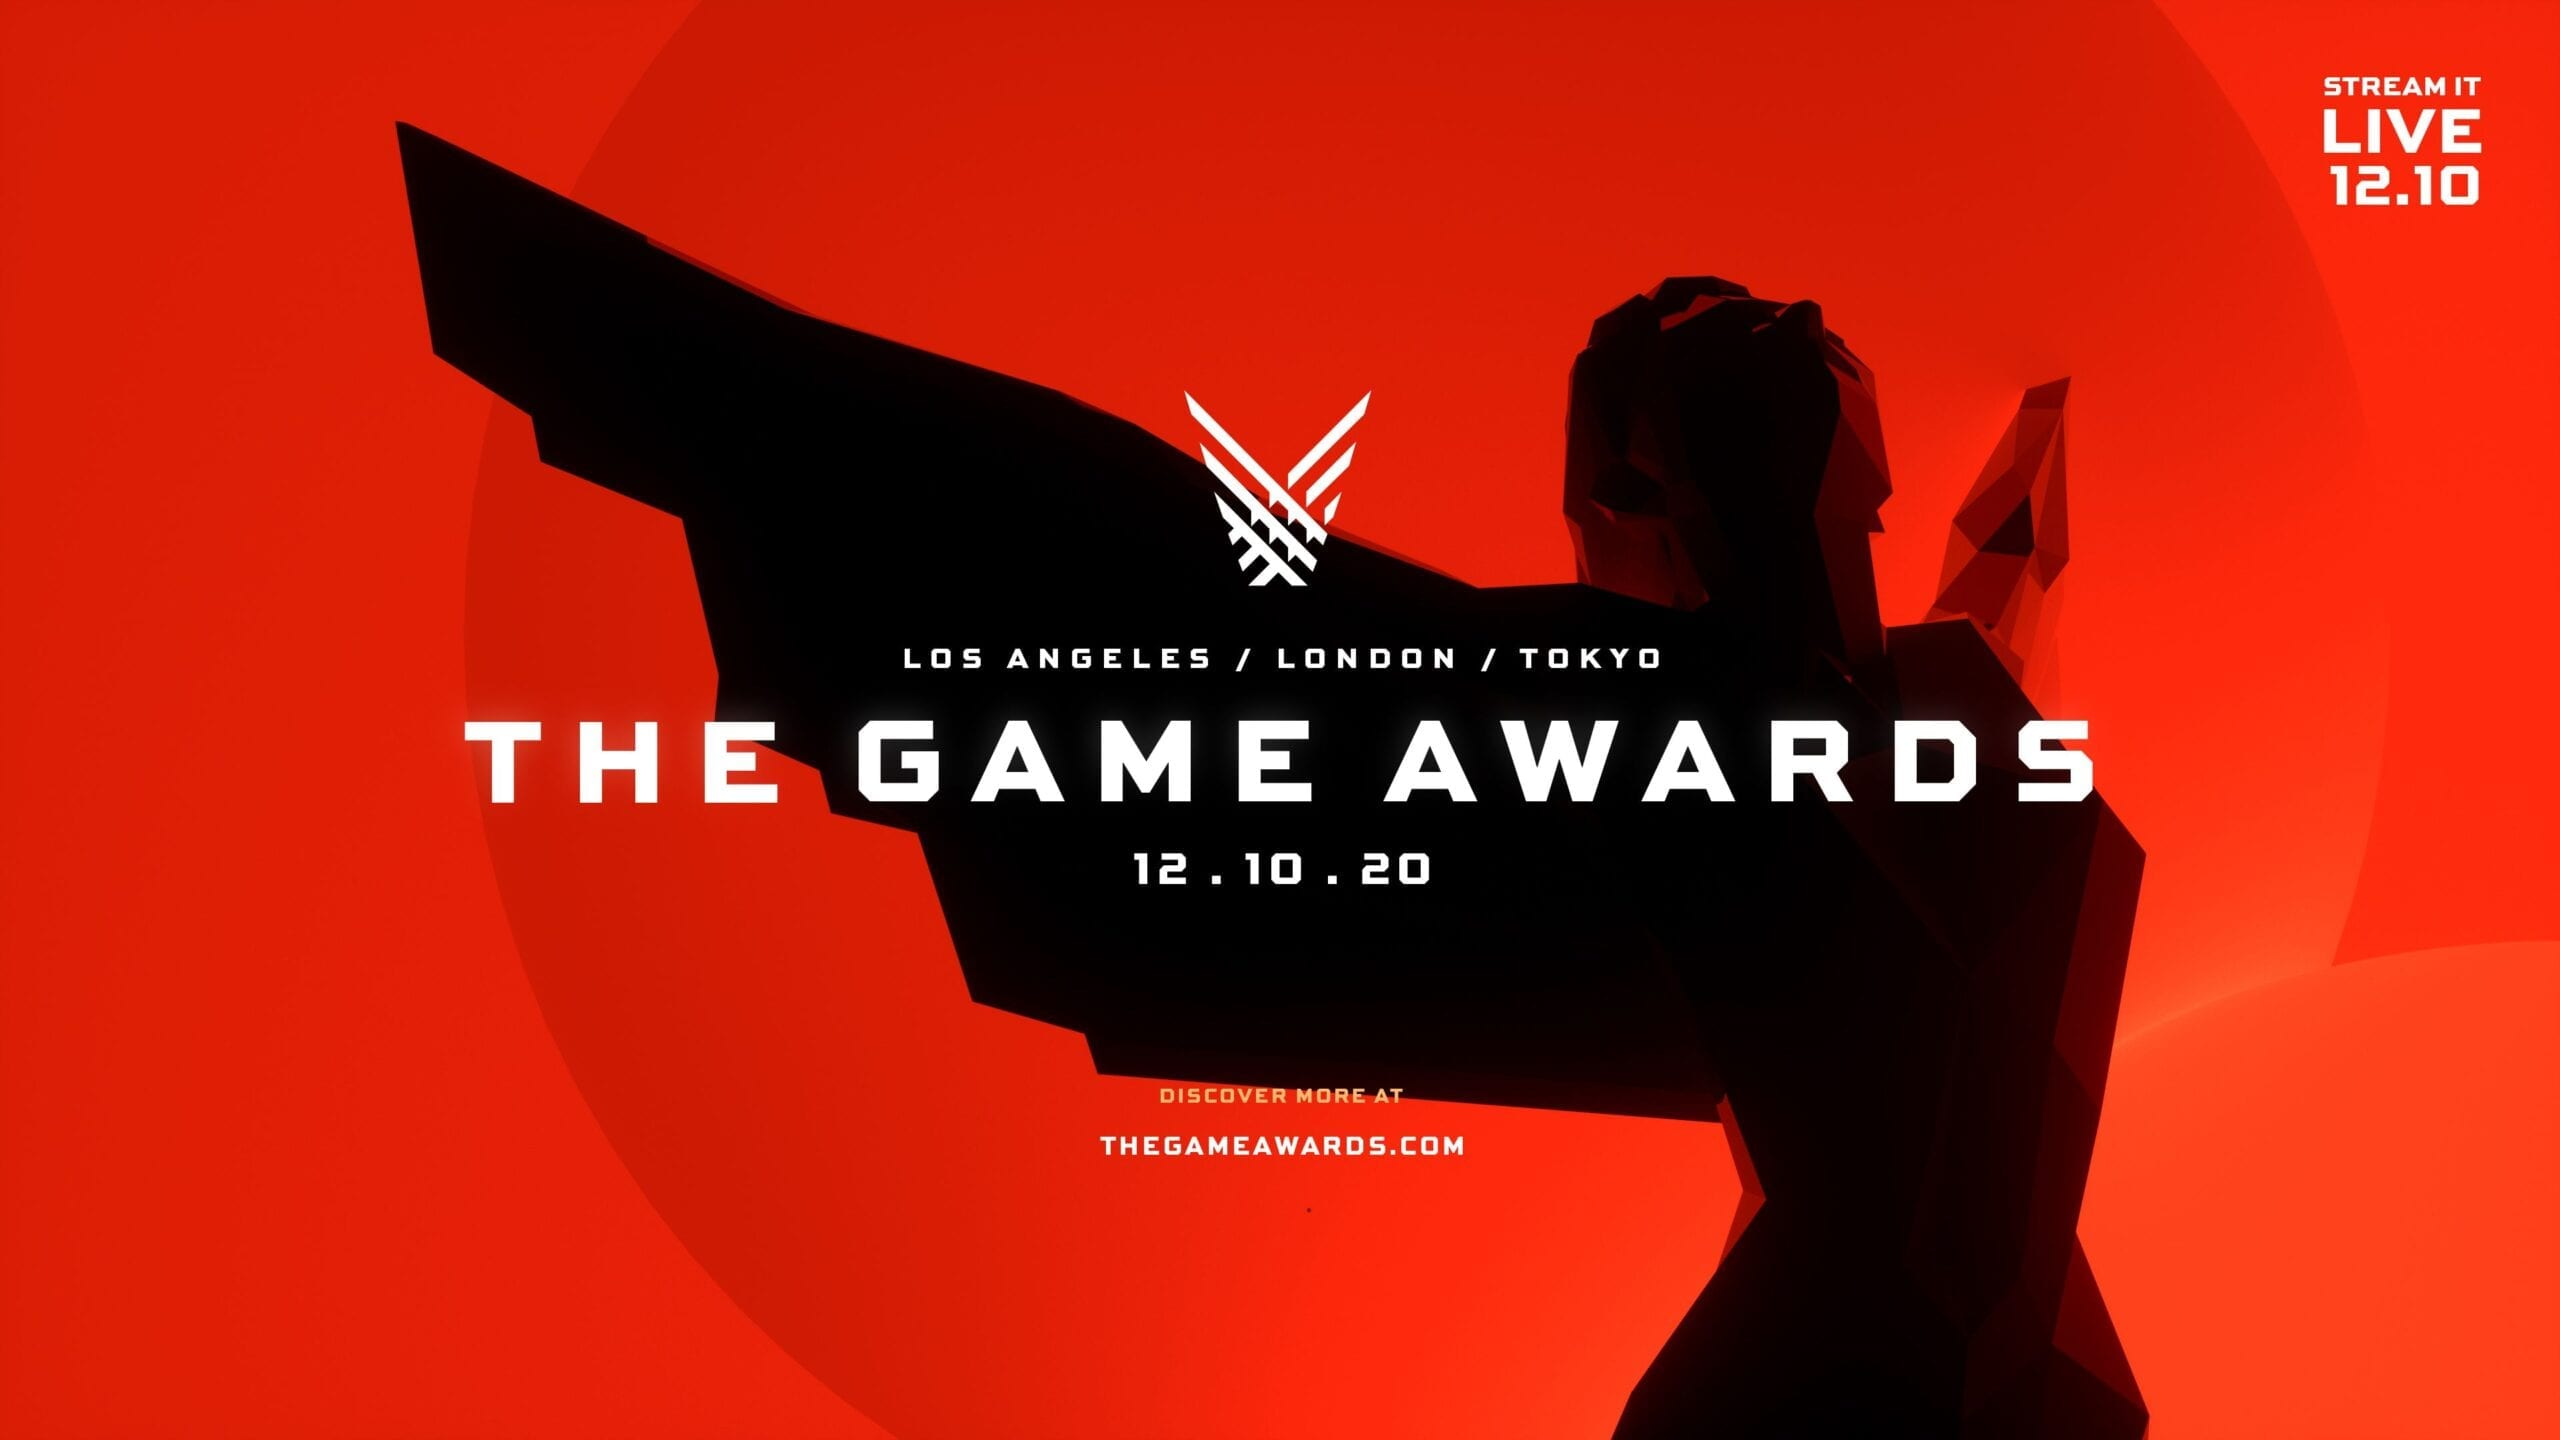 When, Where & How To Watch The Game Awards 2020